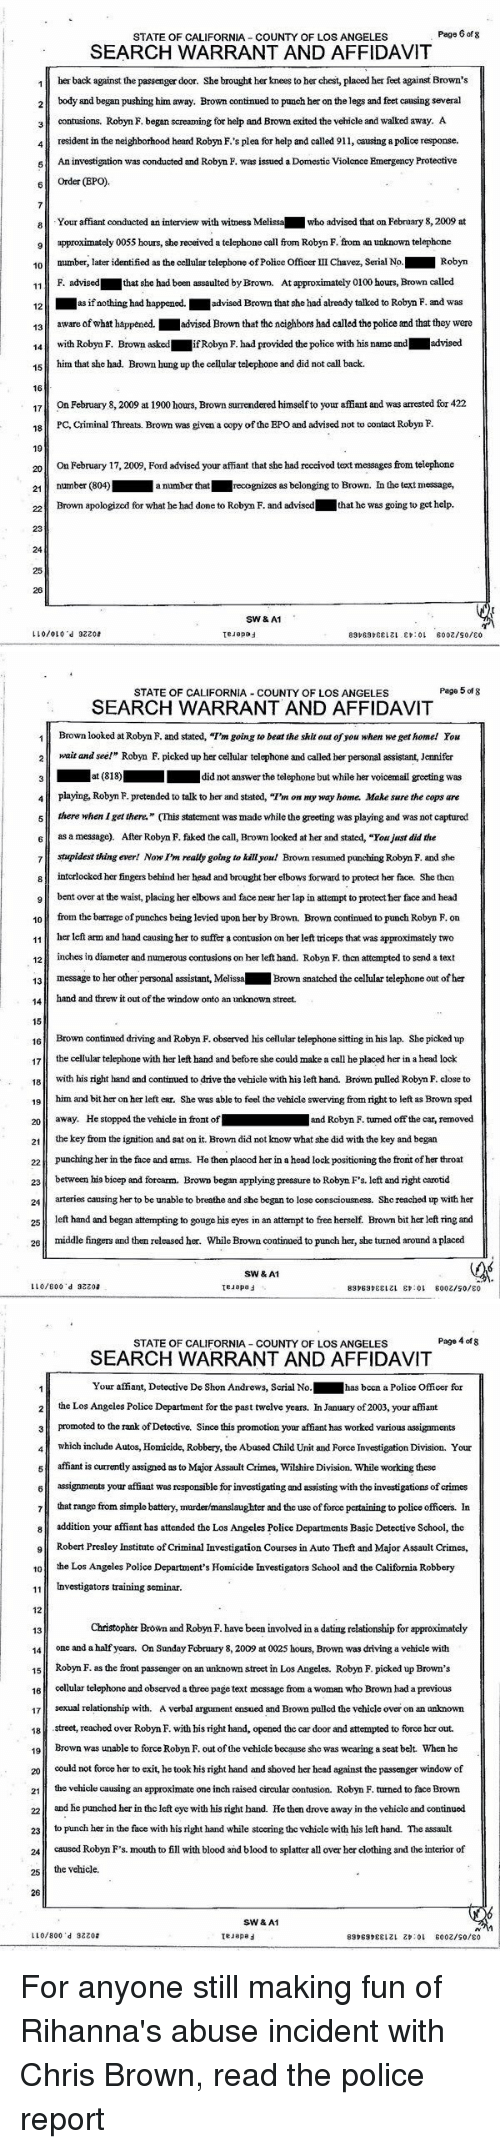 Page 6 of 8 STATE OF CALIFORNIA COUNTY OF LOS ANGELES SEARCH WARRANT